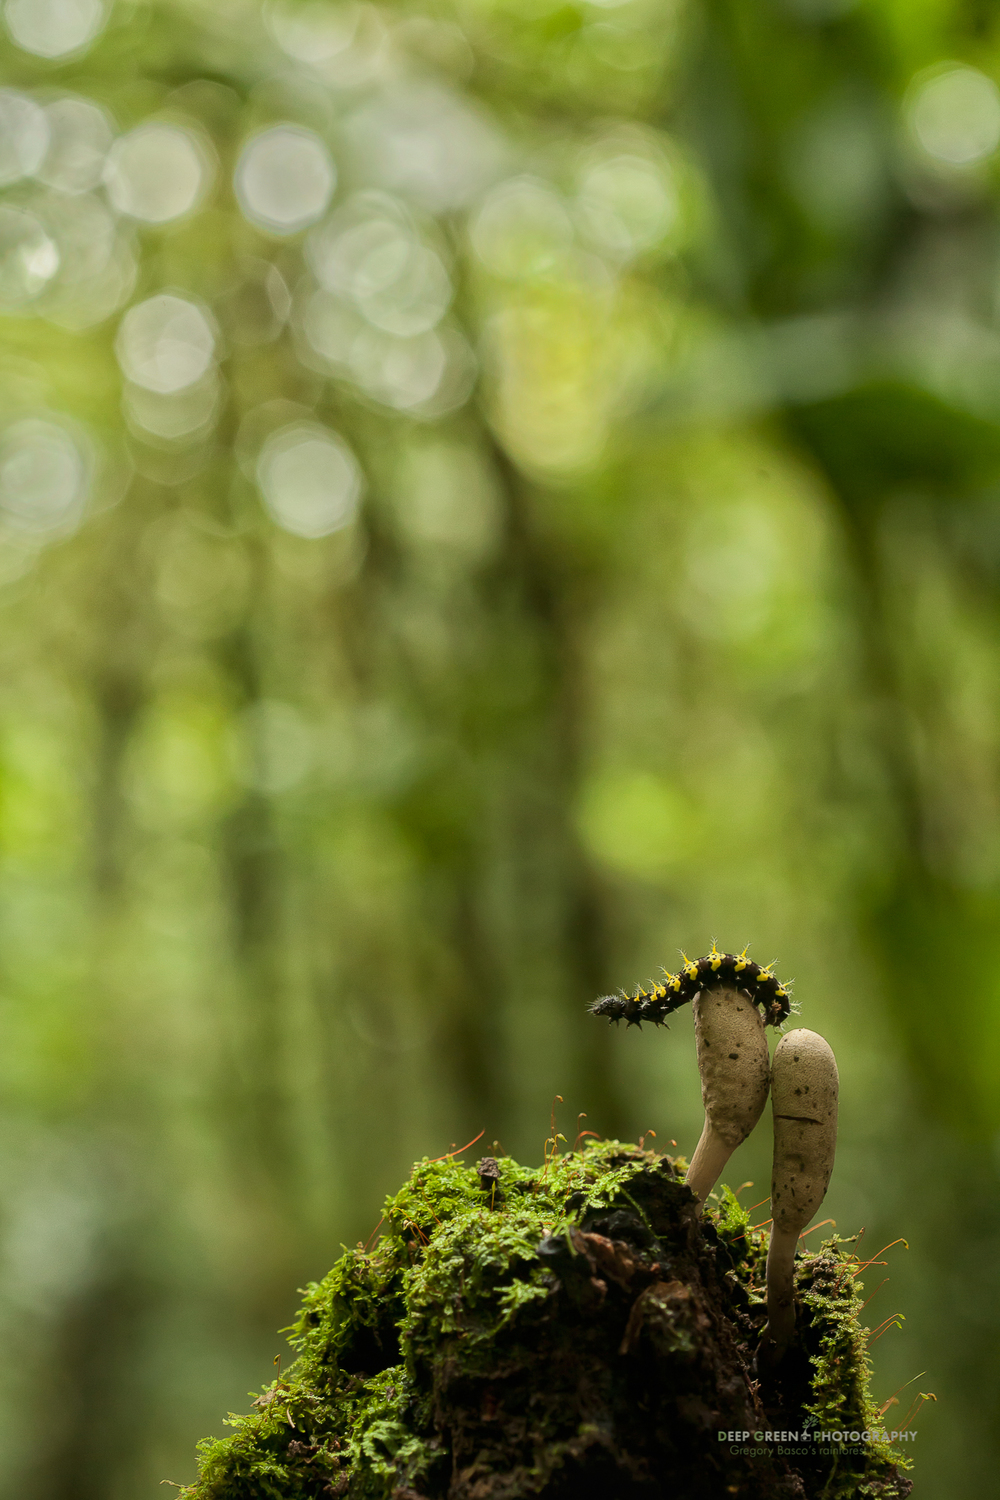 A caterpillar makes it way through a towering cloud forest